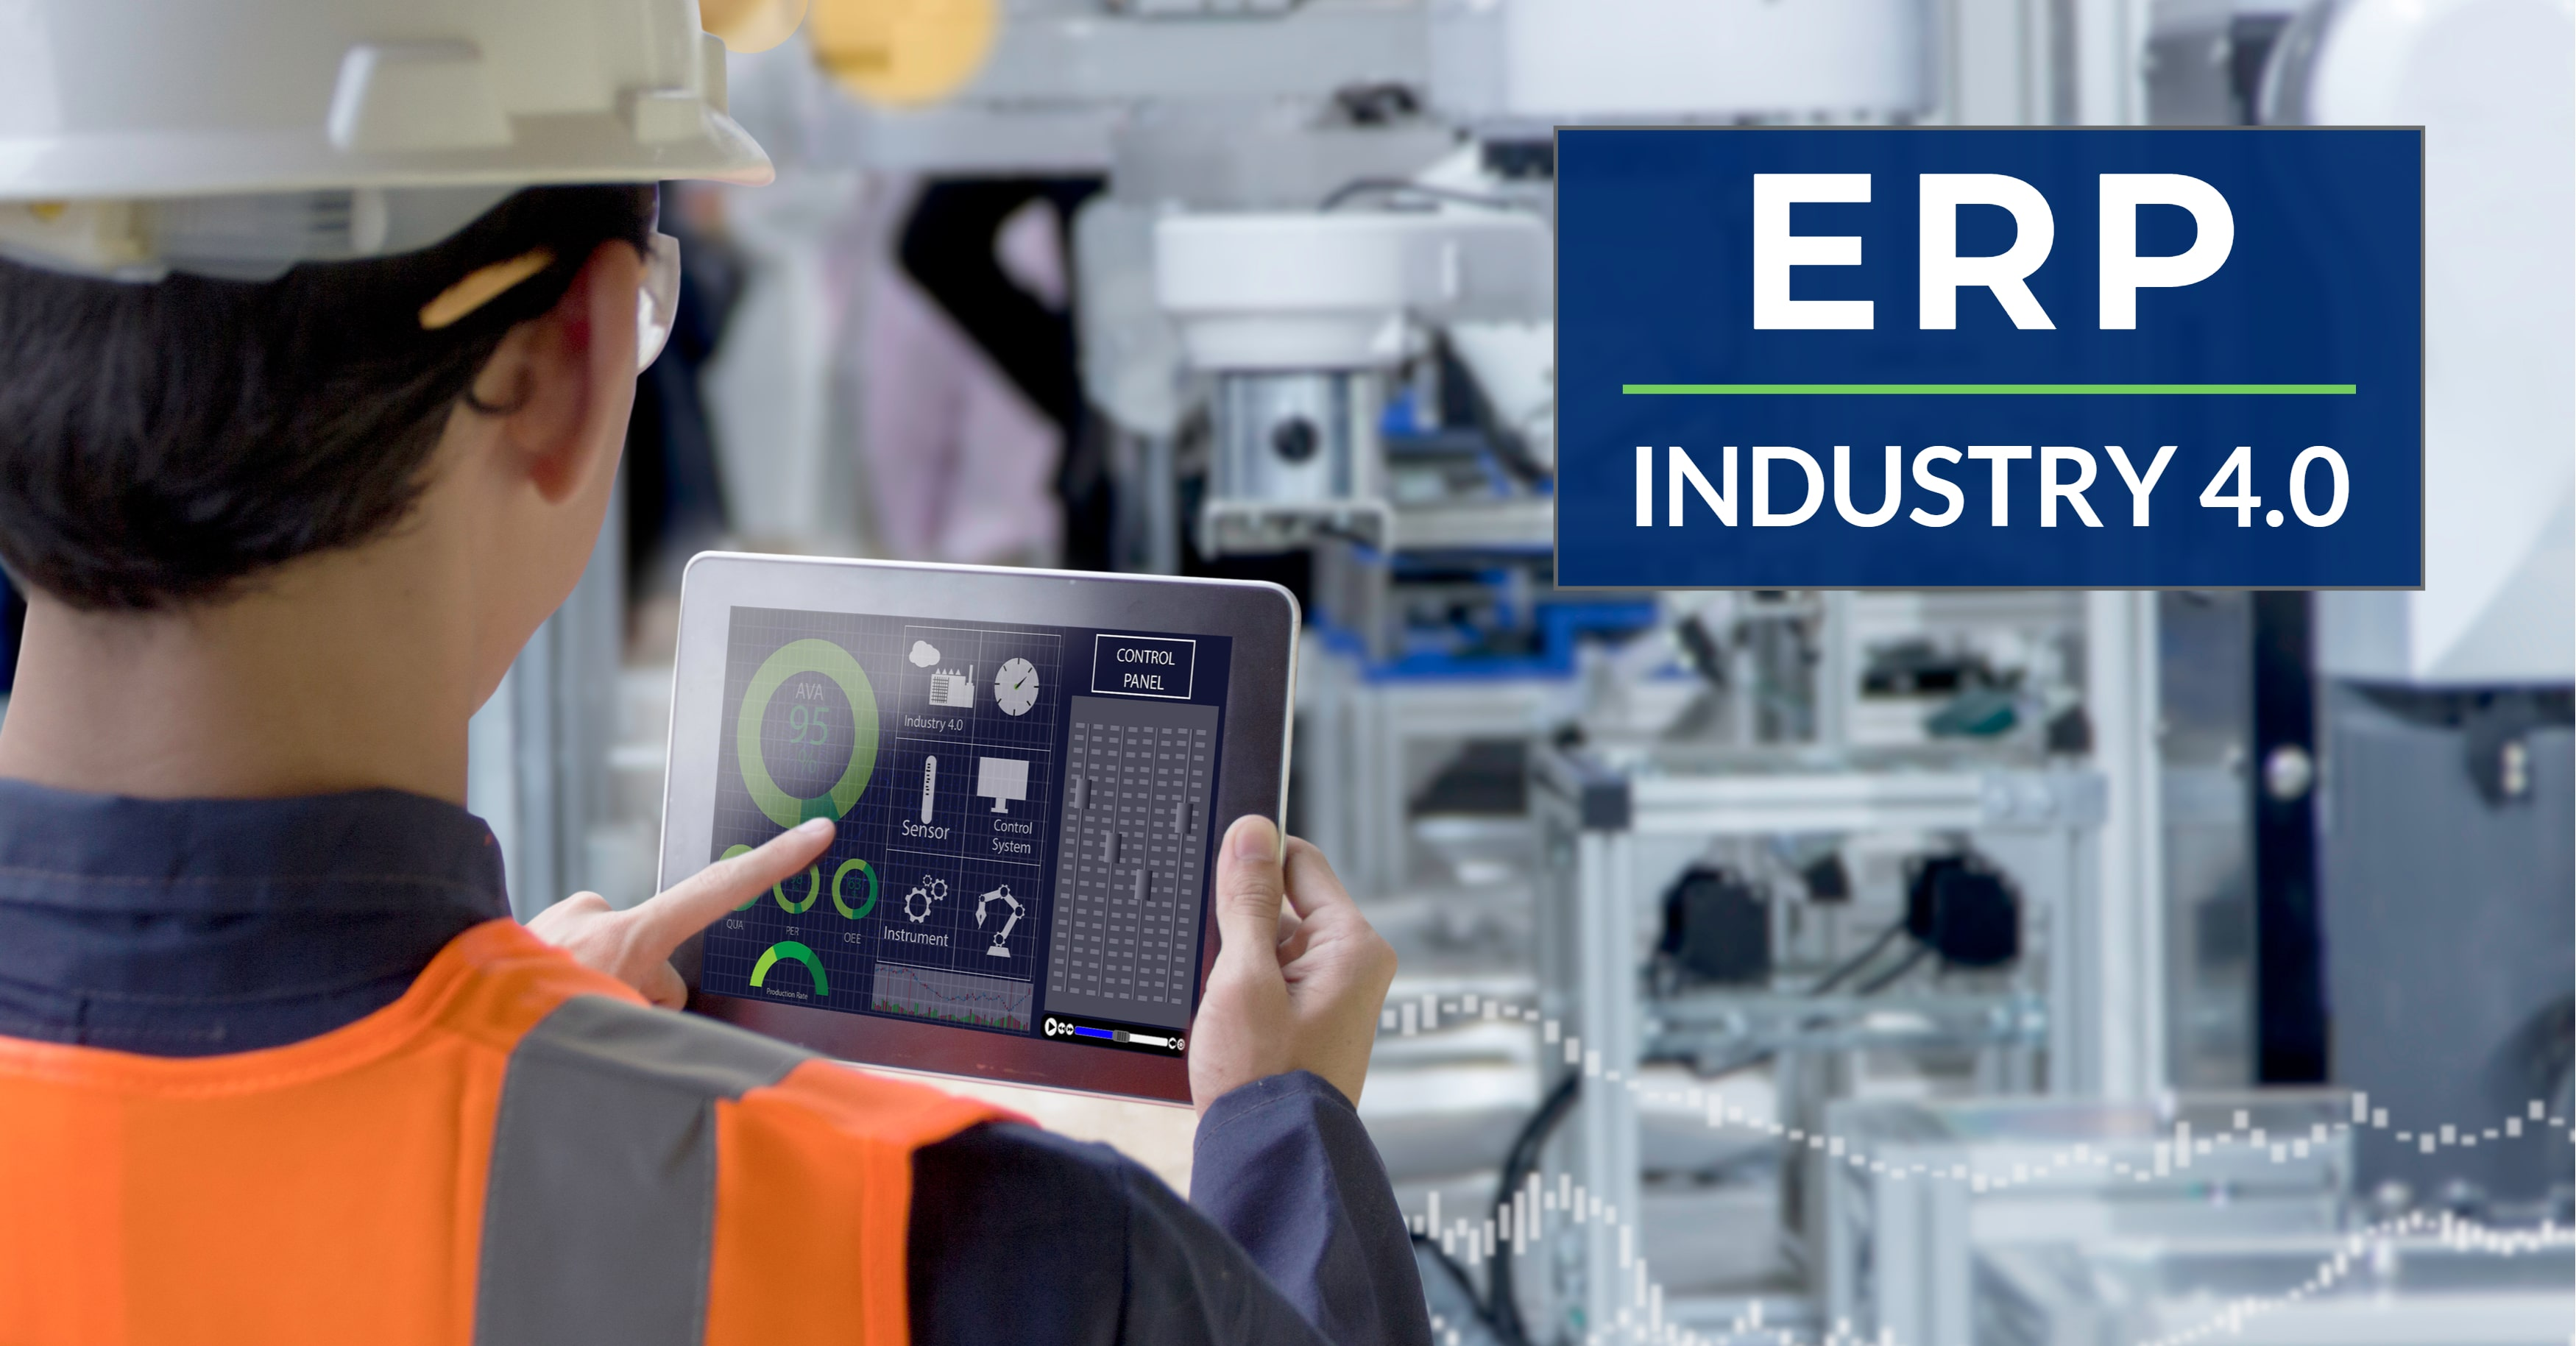 ERP Powers Industry 4.0 Manufacturing